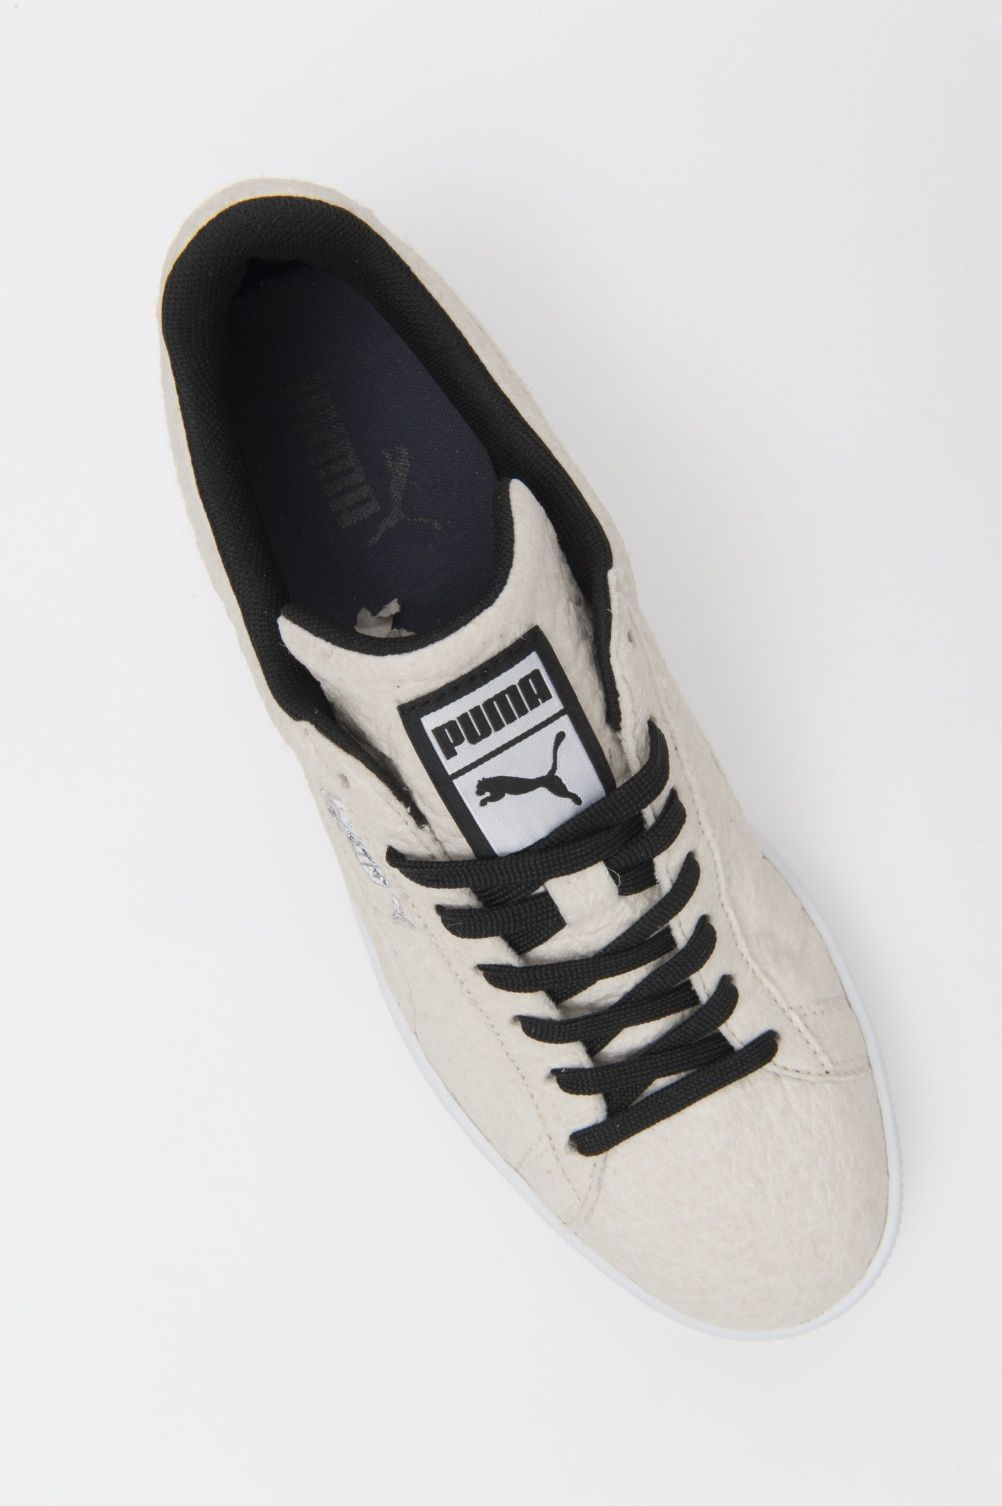 4e994e1a2c2b46 Puma shoe in piñatex This non-woven textile is made from pineapple leaf  fibres and was created by Hijosa